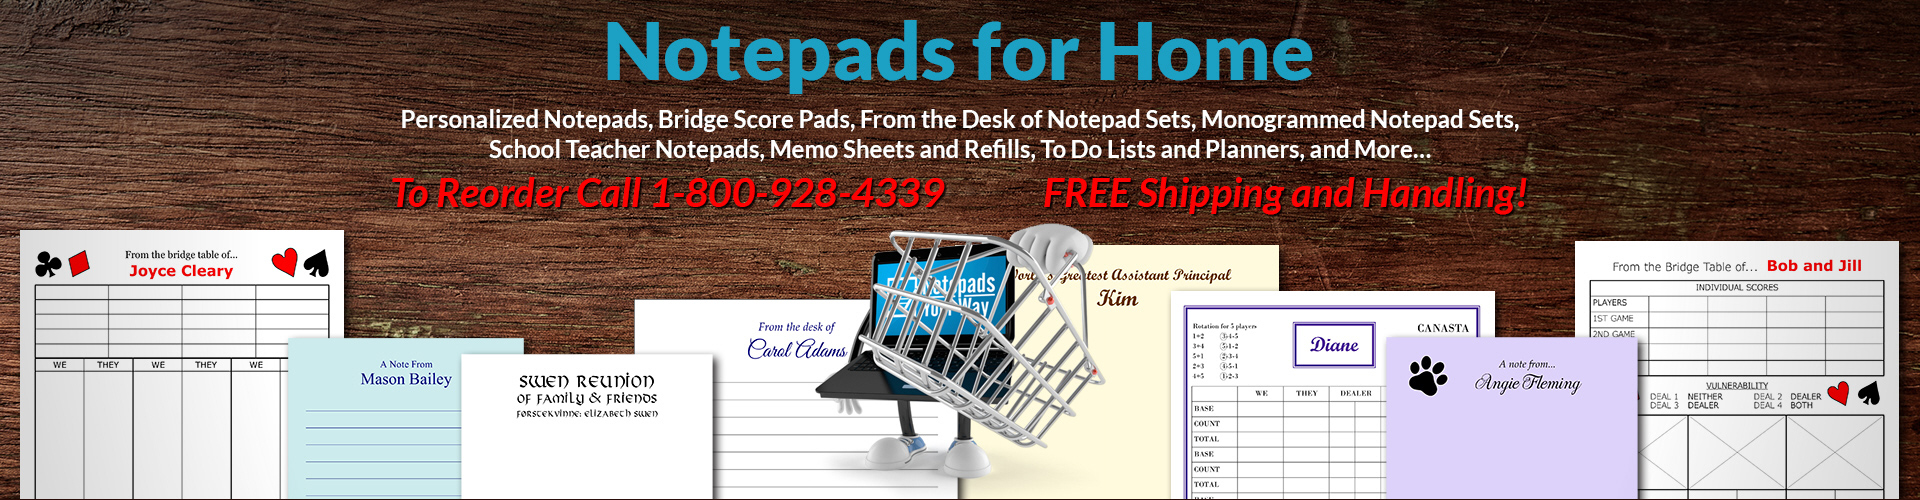 Notepads for Home